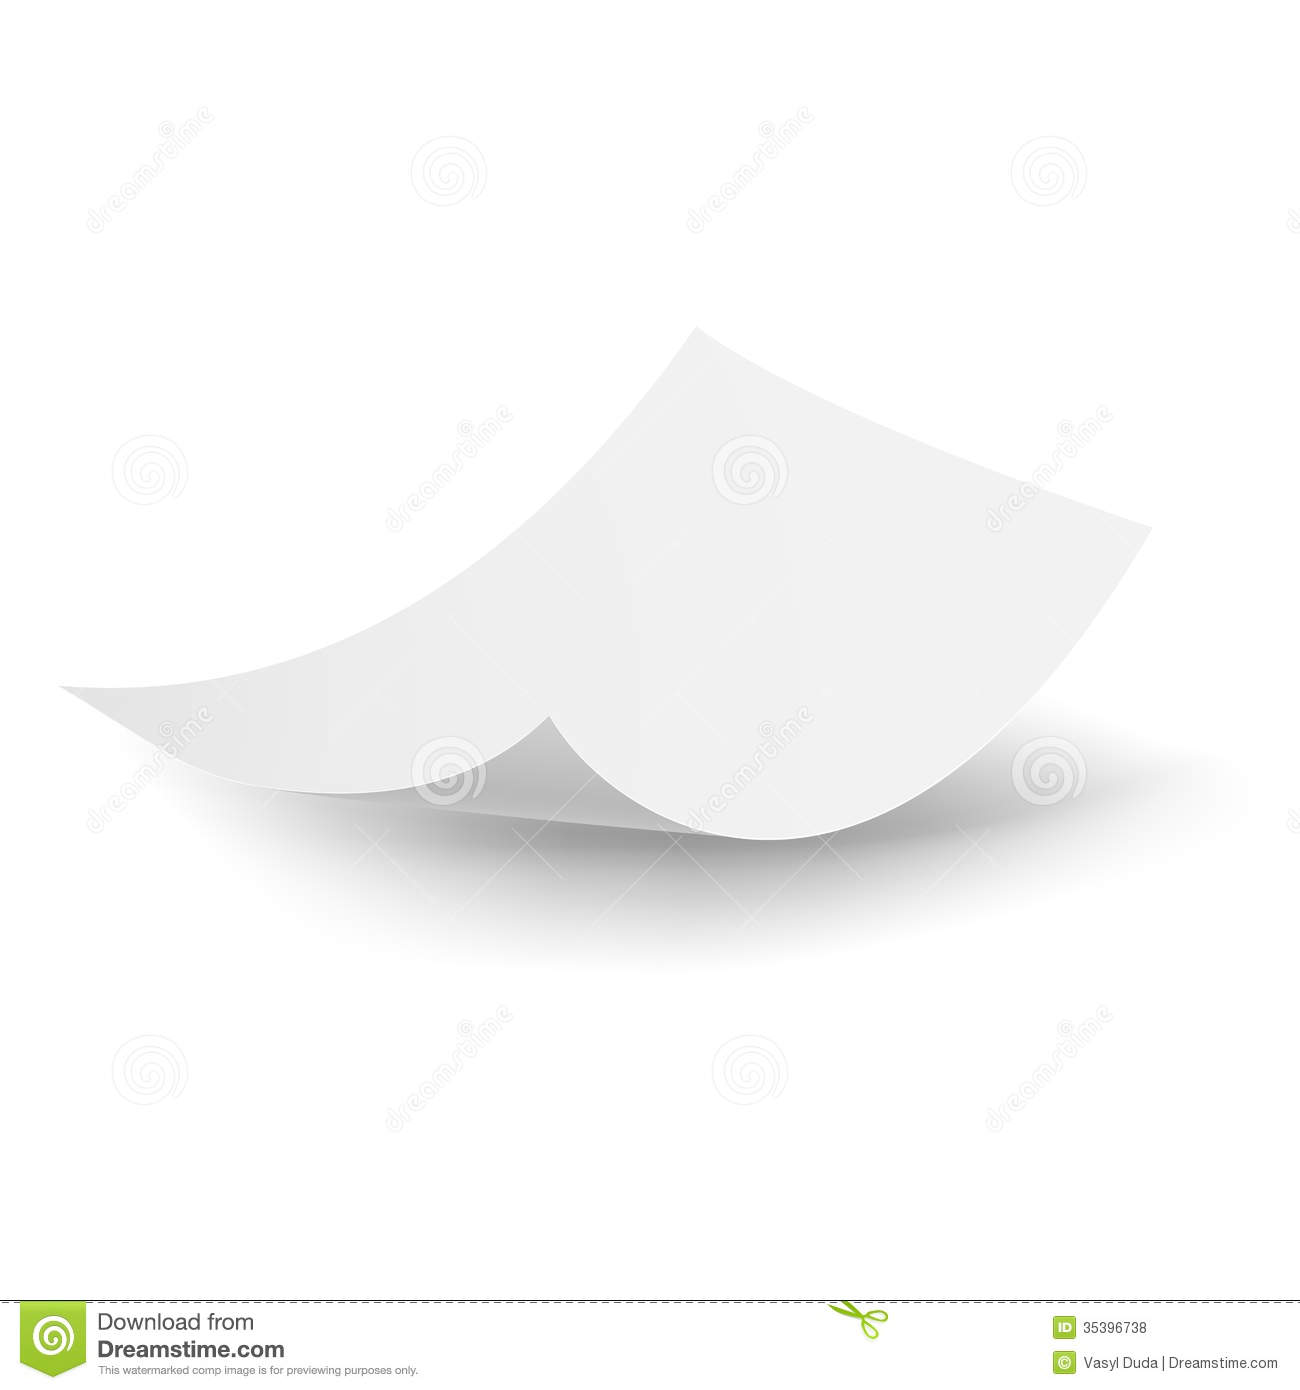 Blank paper sheet falling down. Illustration on white background.